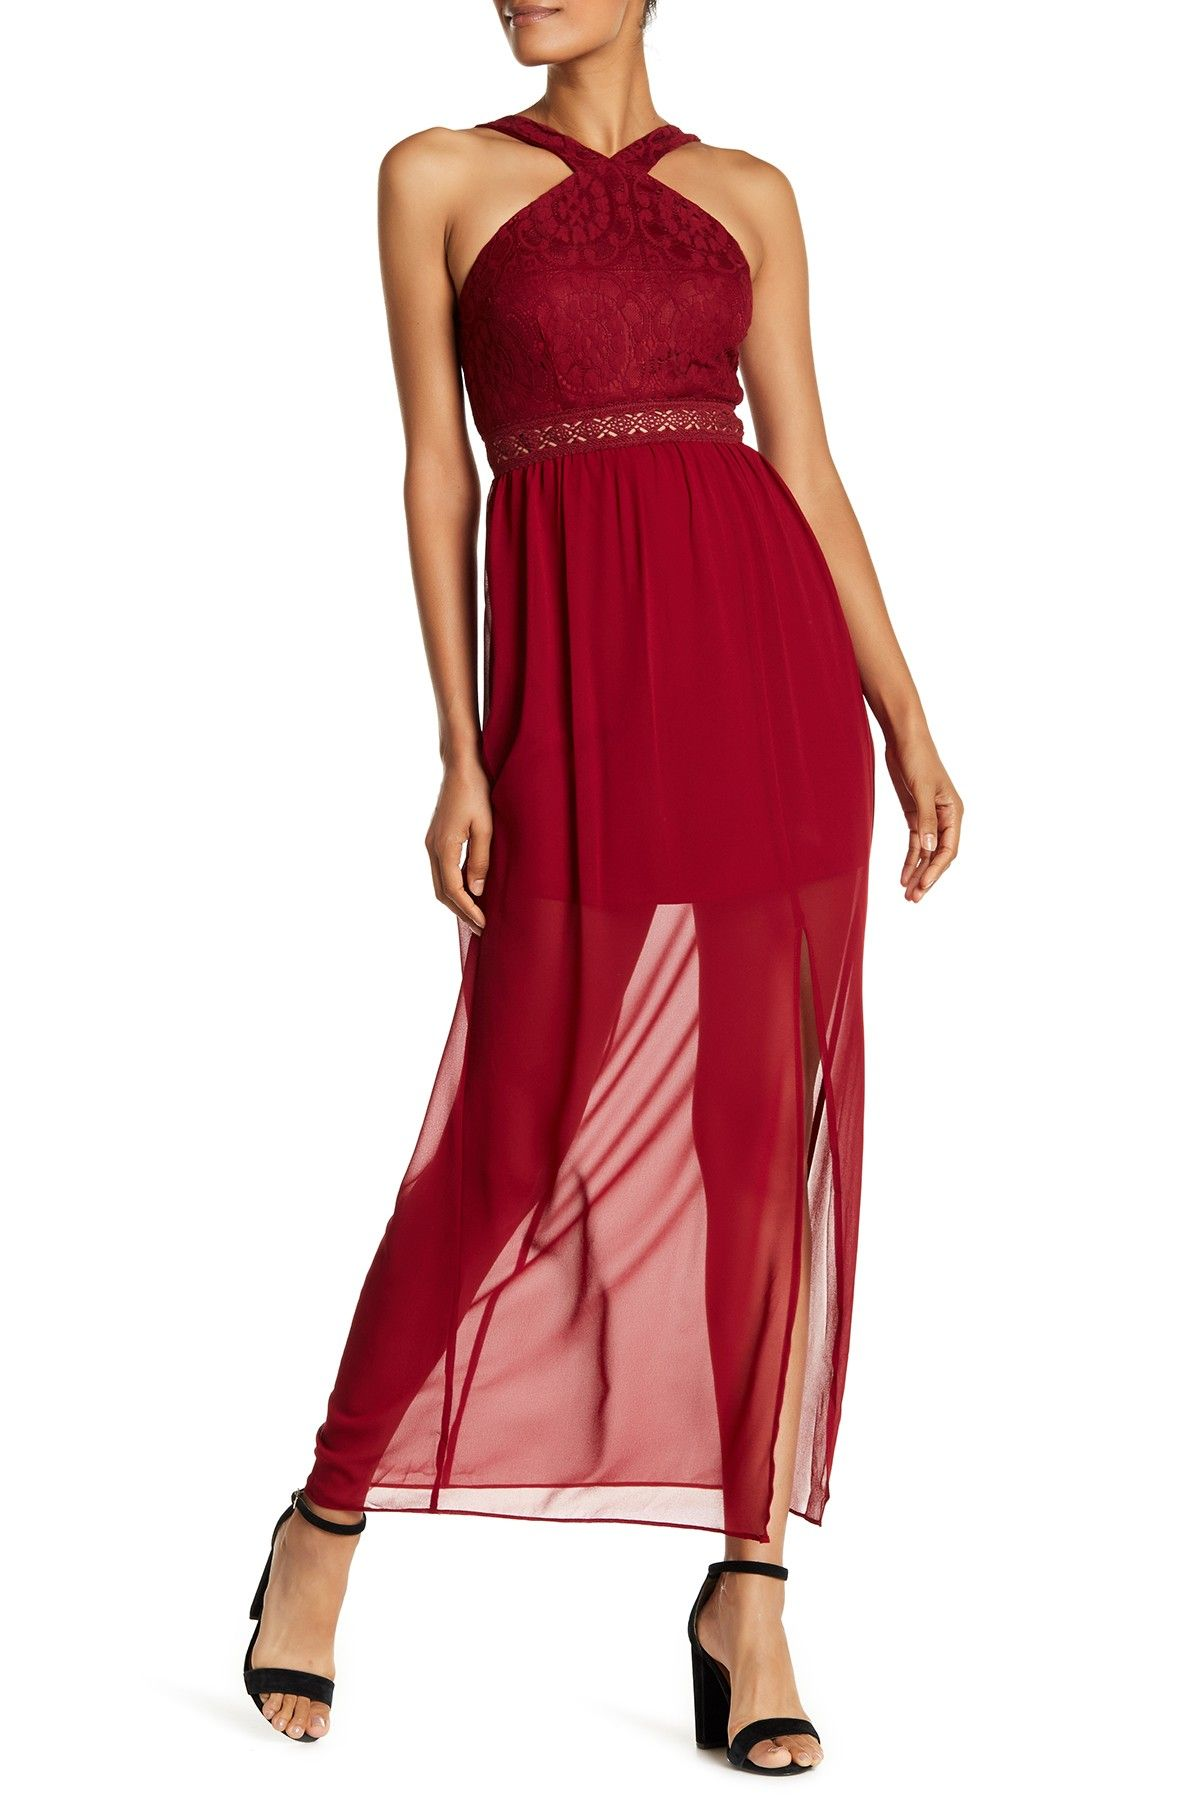 Amy byer lace vneck chiffon maxi dress juniors products